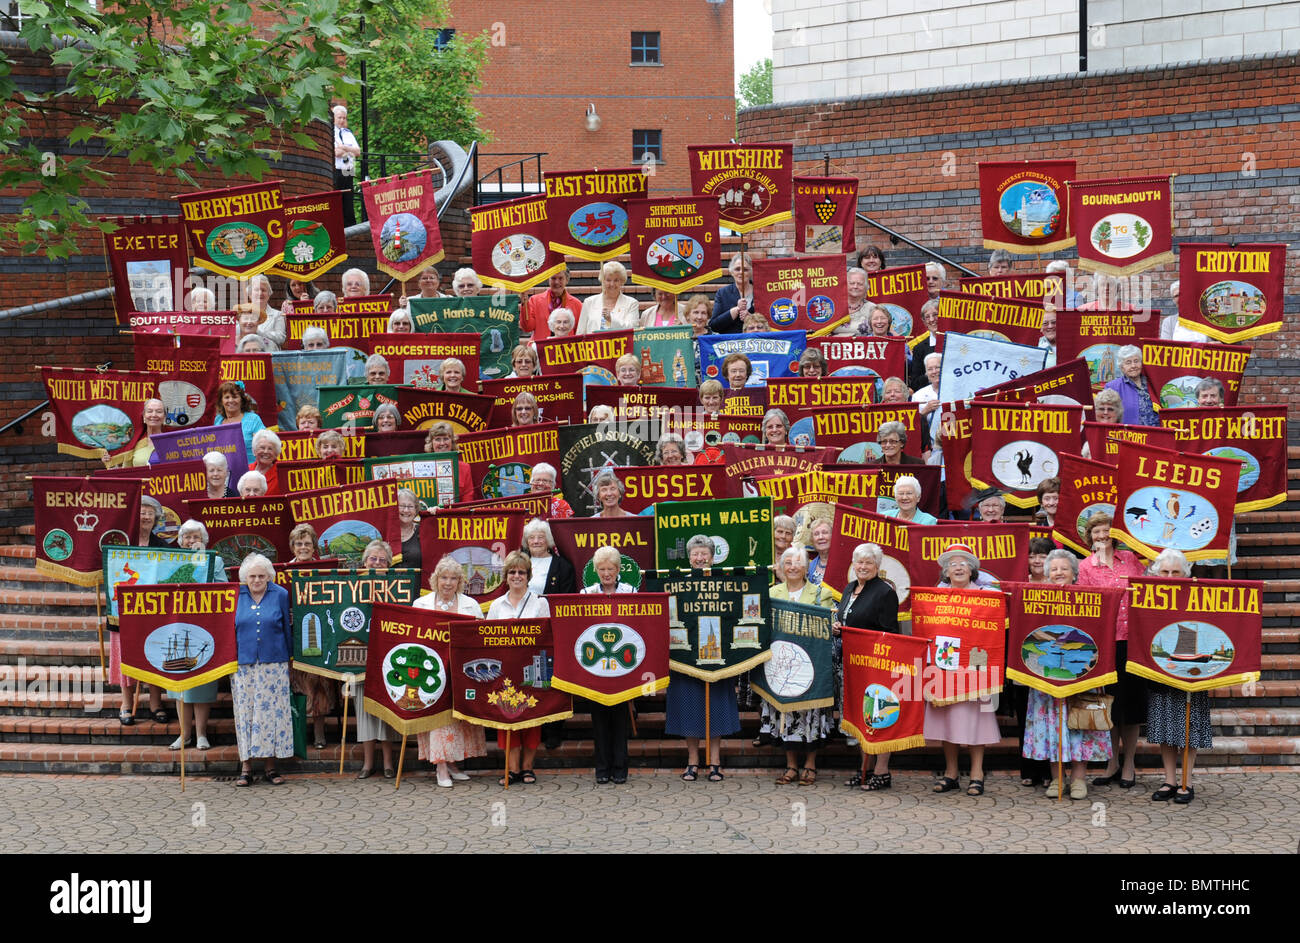 Members of the Townswomen's Guild after the parade of banners at their annual conference - Stock Image